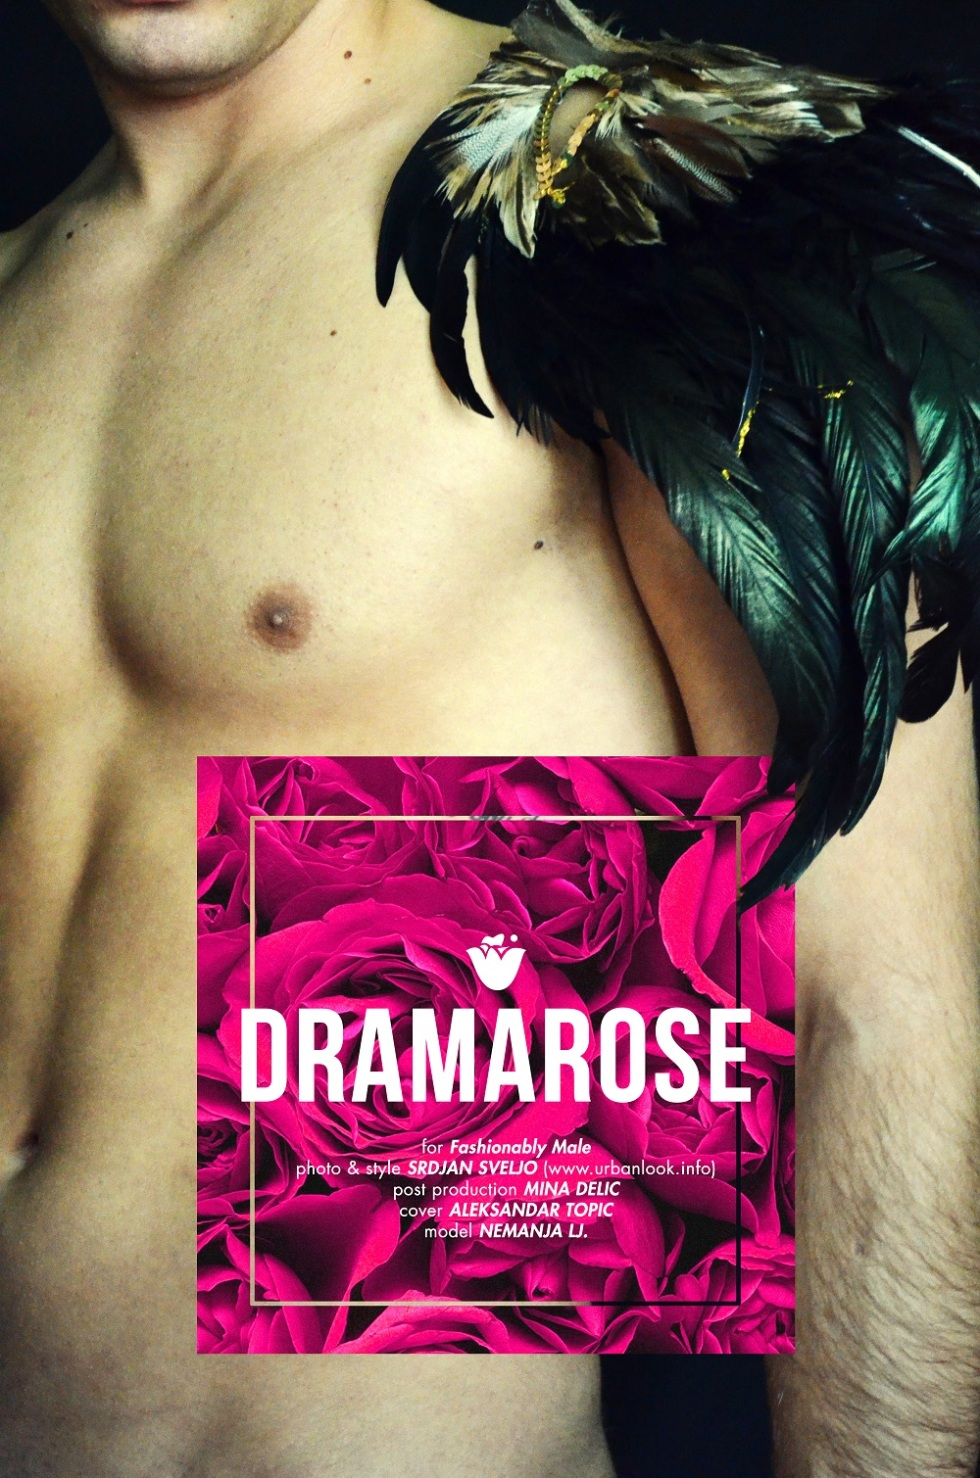 DRAMAROSE BY SRDJAN SVELJO FOR FASHIONABLY MALE